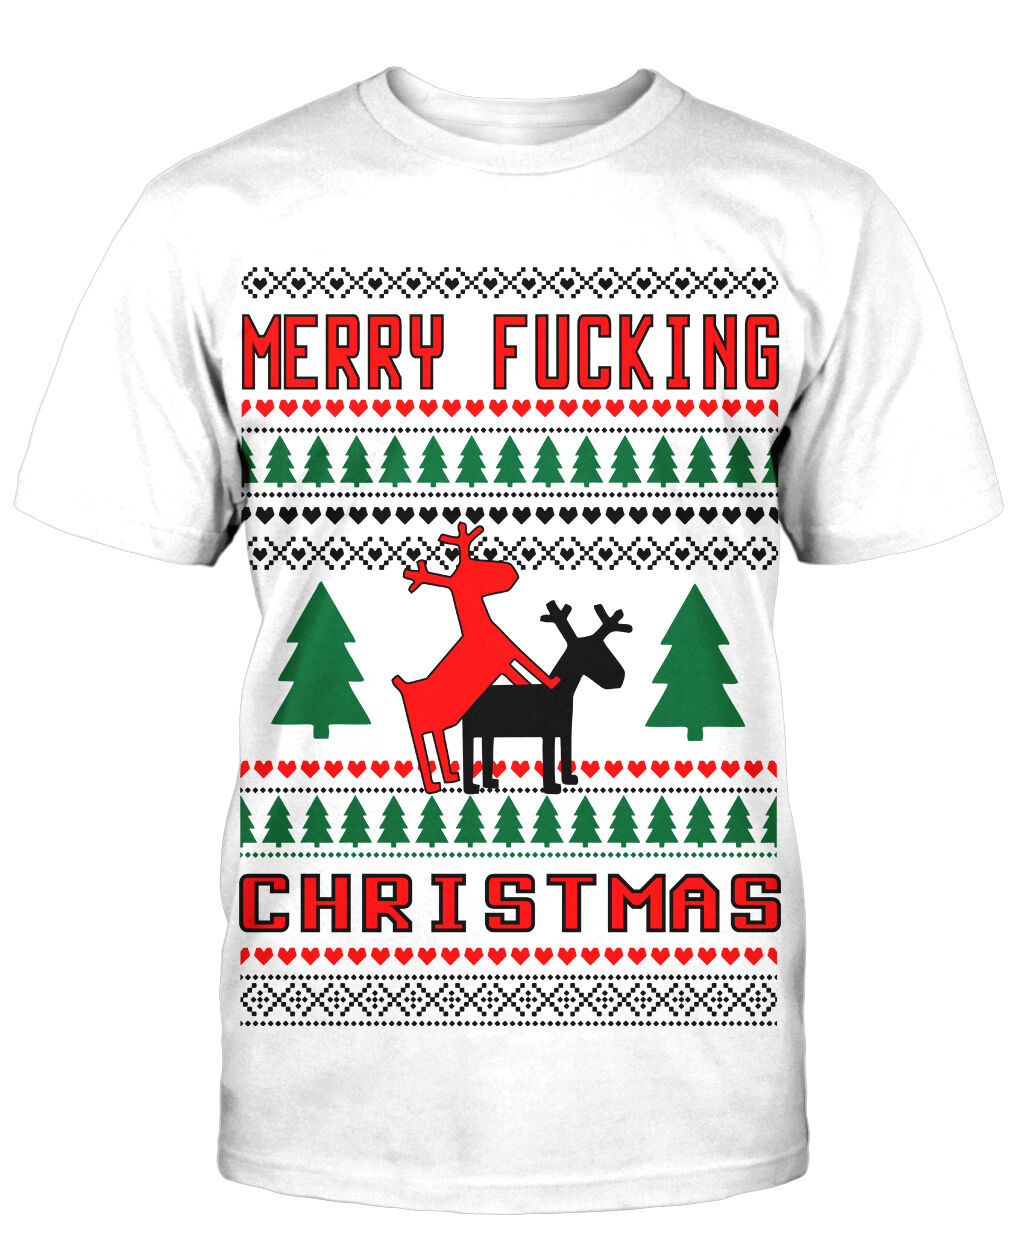 Merry Fucking Christmas T-Shirt Fun Trash Ugly Funshirt Sprüche Weihnachten XMas